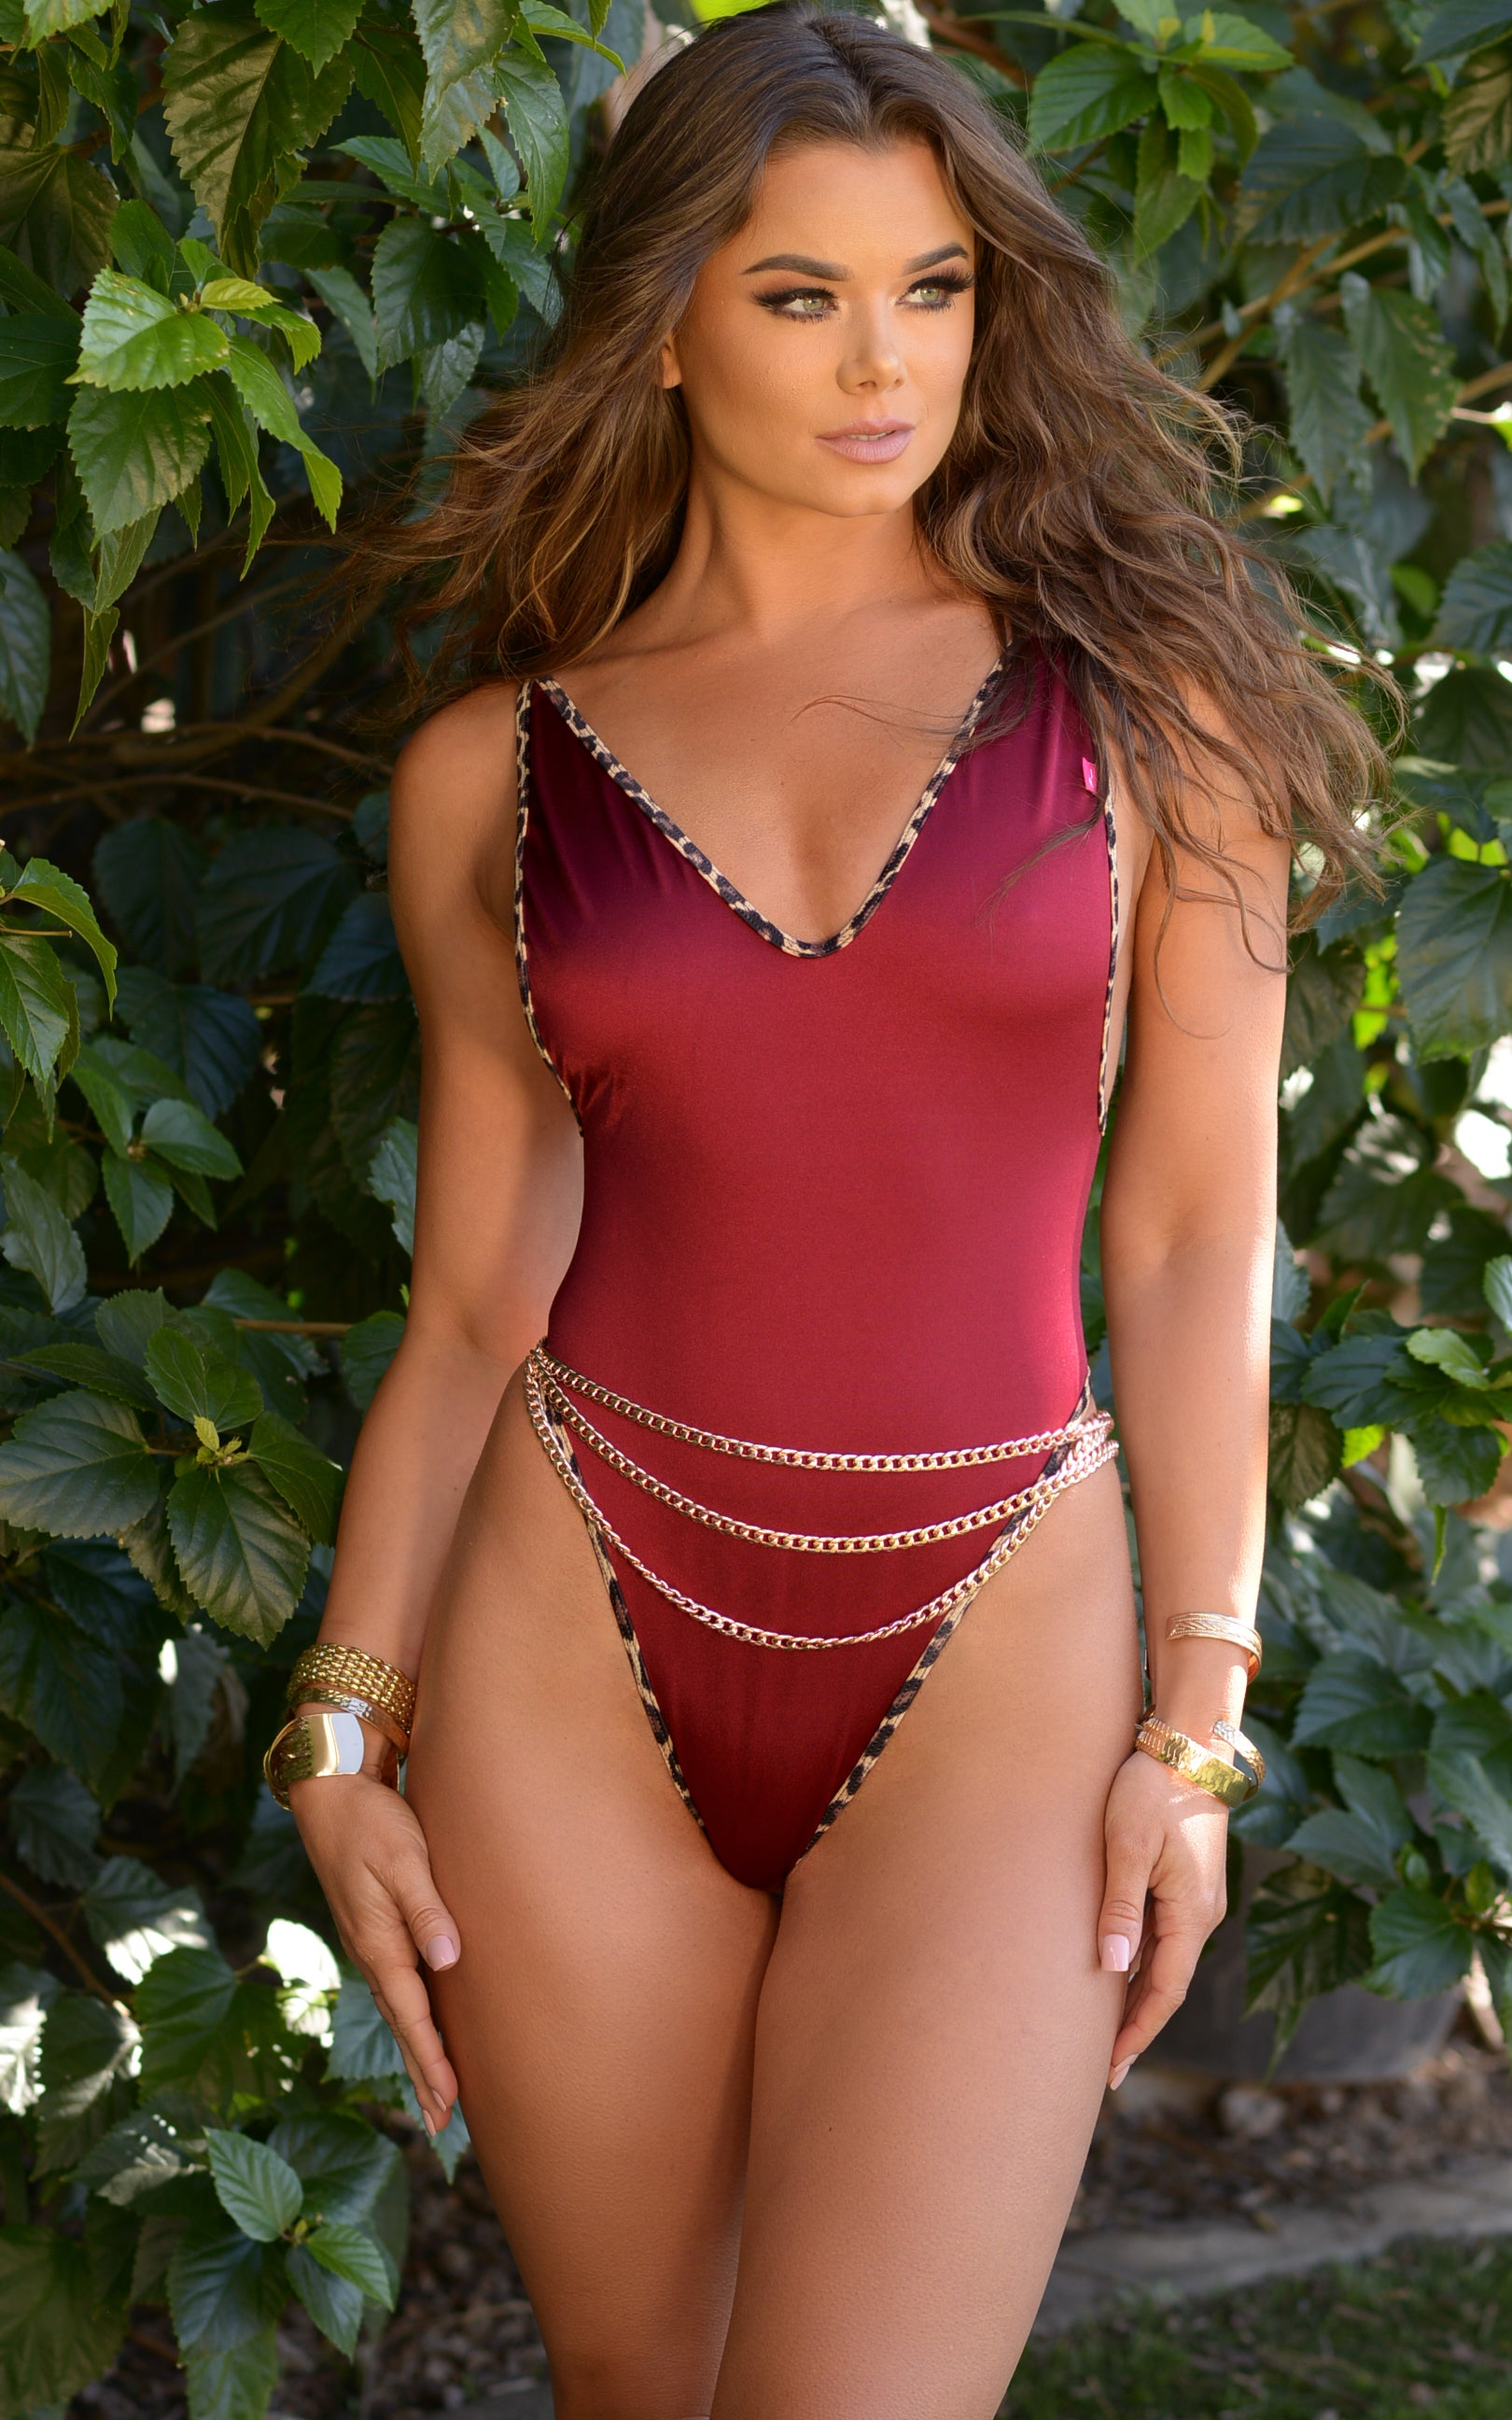 """Hips Don't Lie"" Layered 3 Tier Chain Belt in Rose Gold - Chynna Dolls Swimwear"